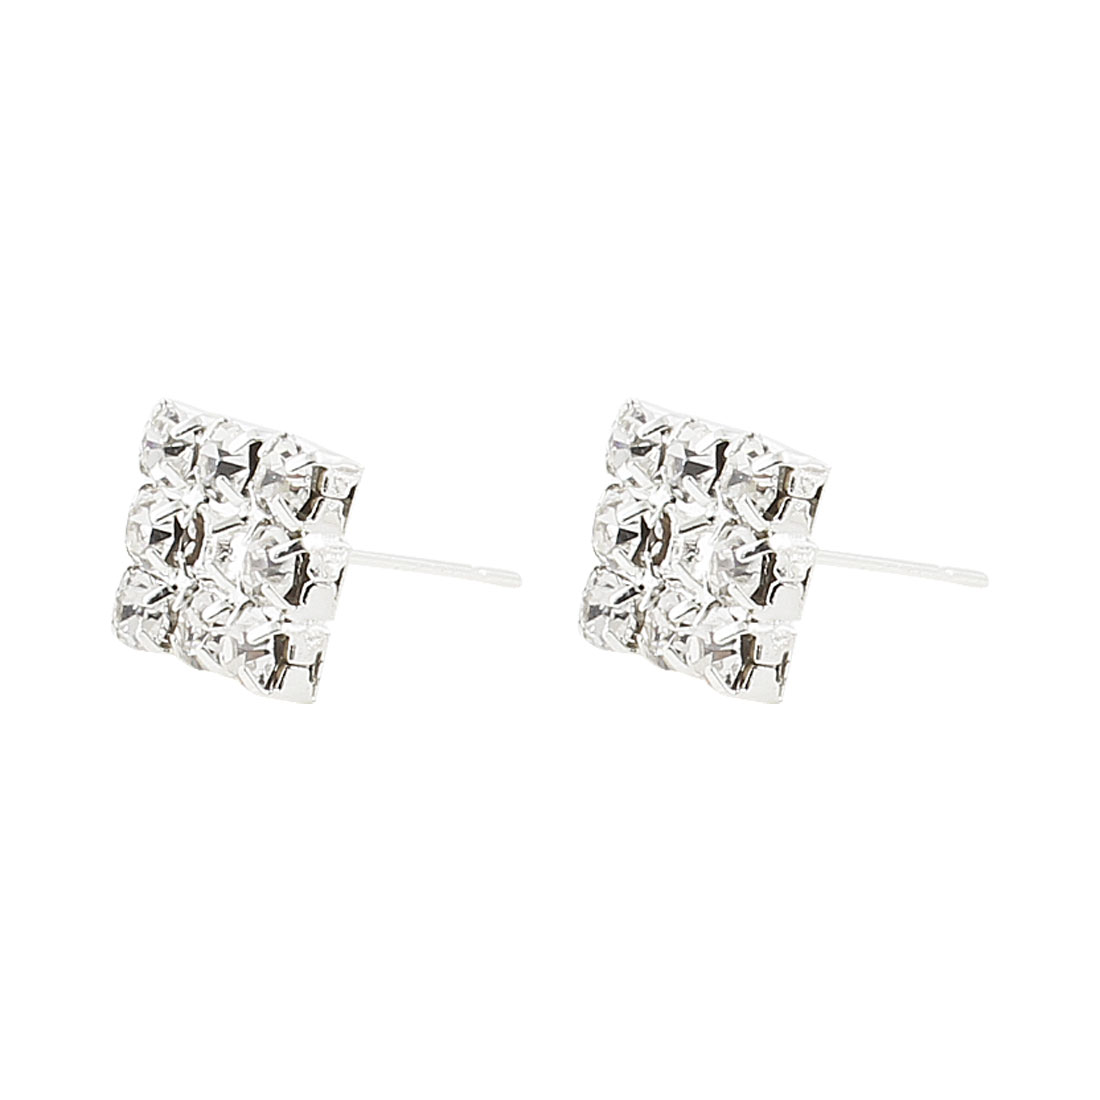 Pair Faux Rhinestones Decor Square Shaped Silver Tone Stud Earrings for Lady